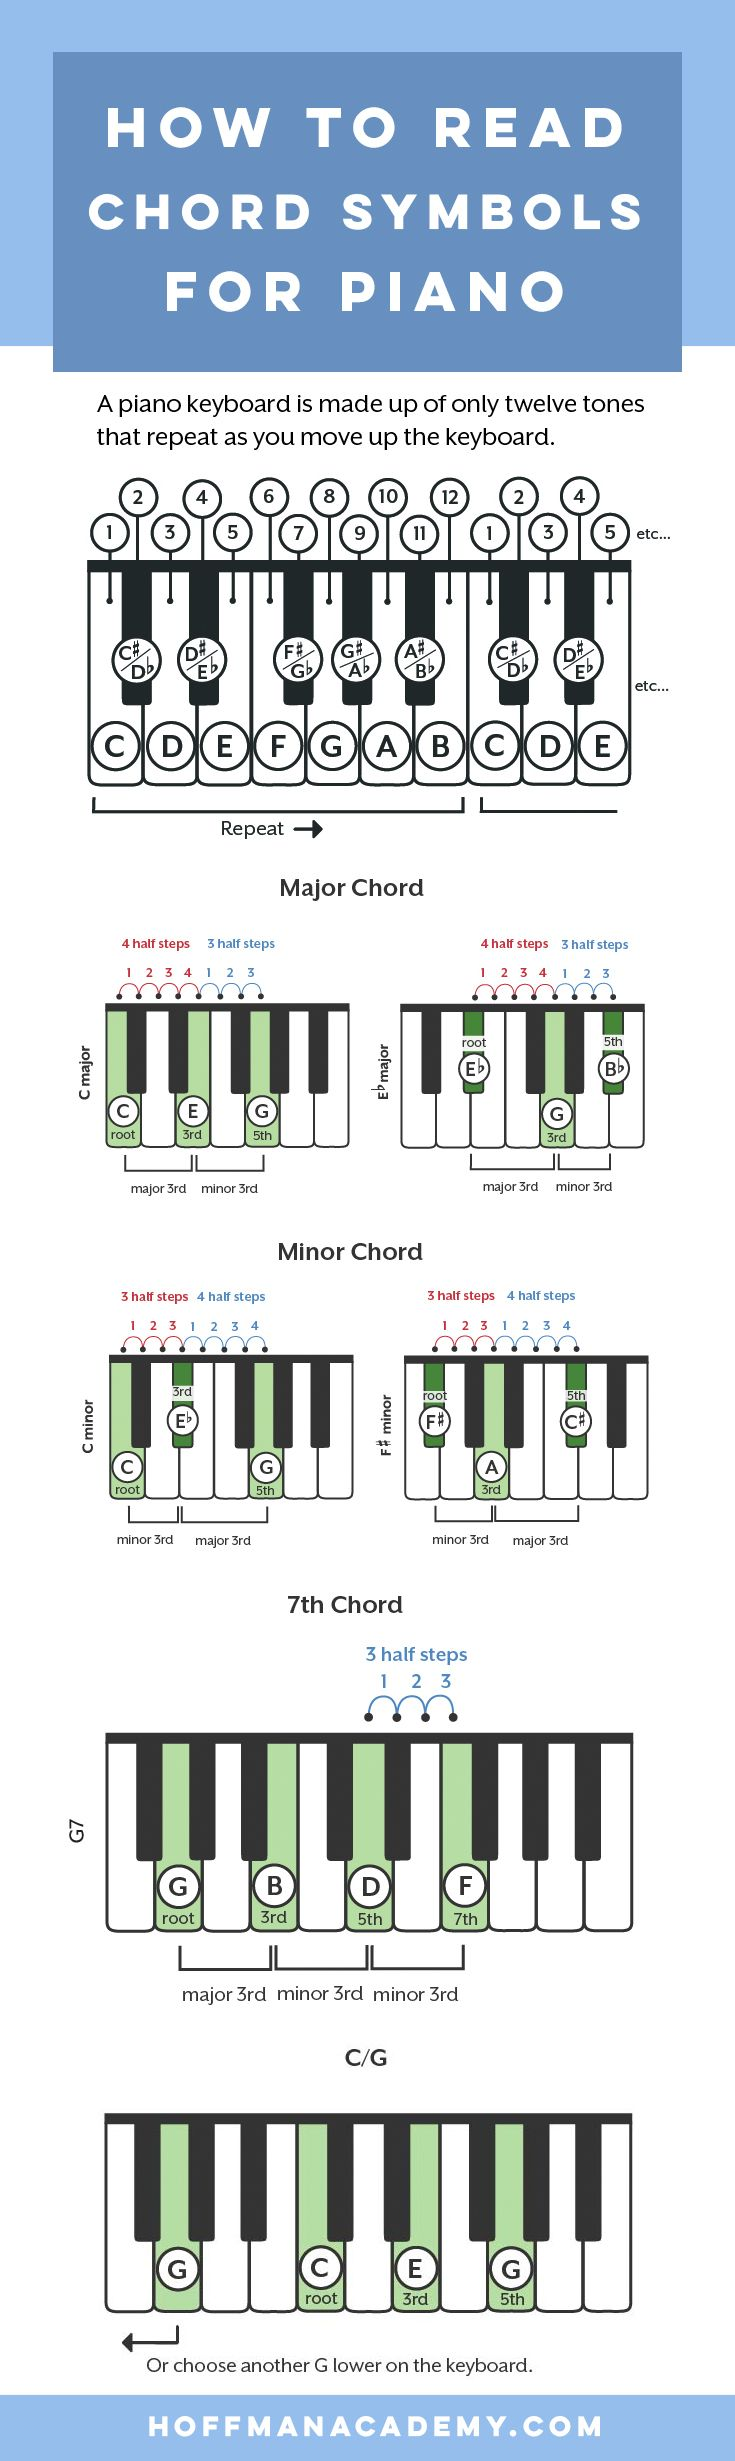 How To Read And Play Piano Chords In 2018 Music Pinterest